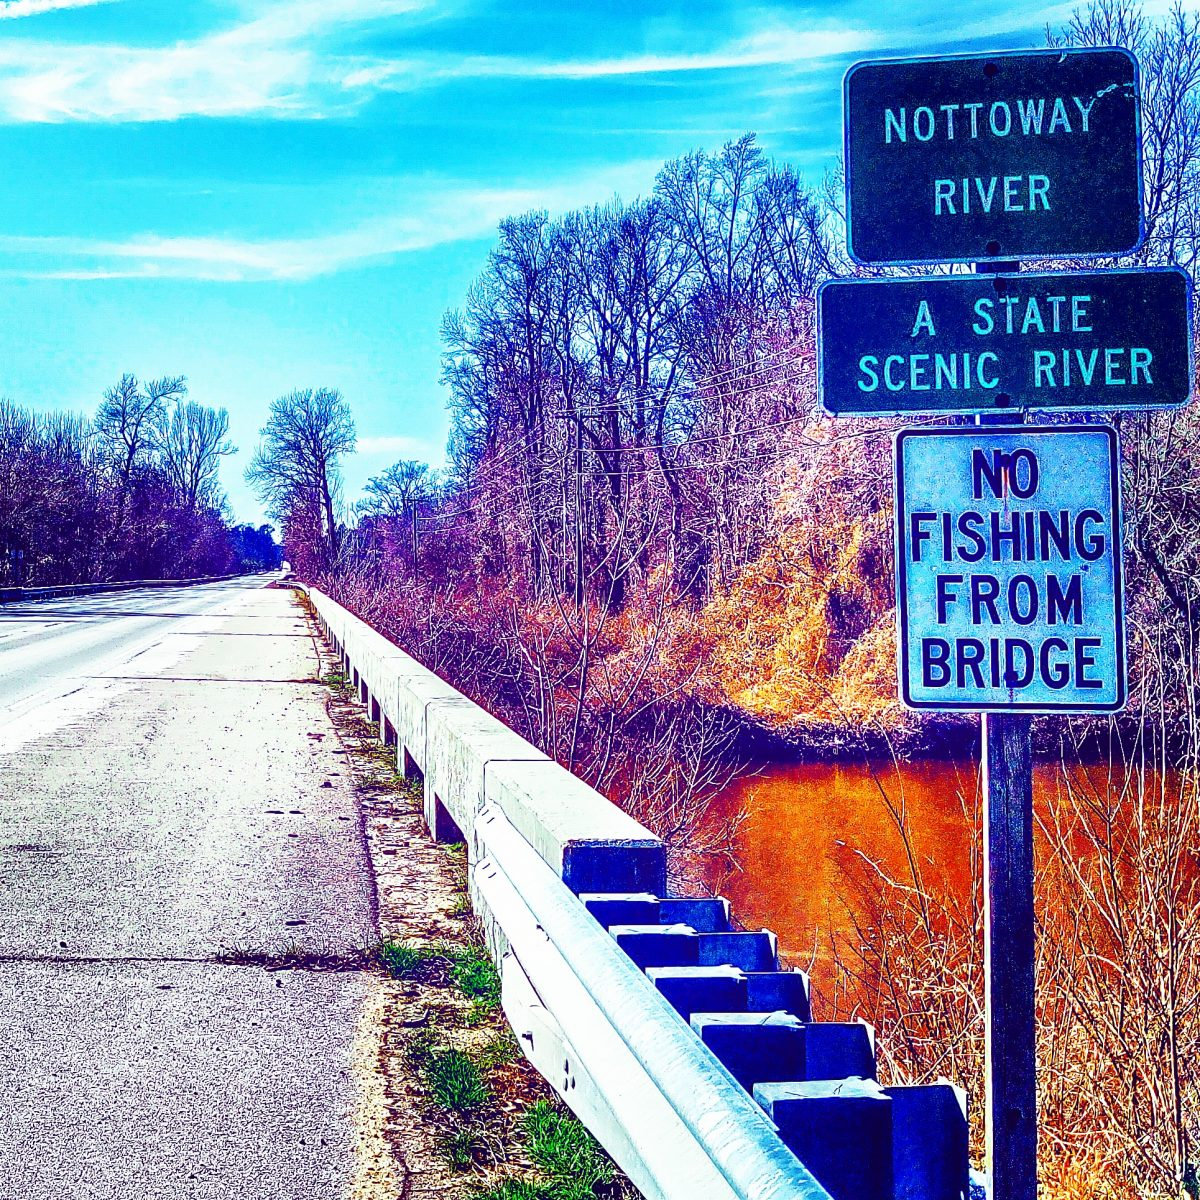 Sussex County, Virginia: In search of hidden history